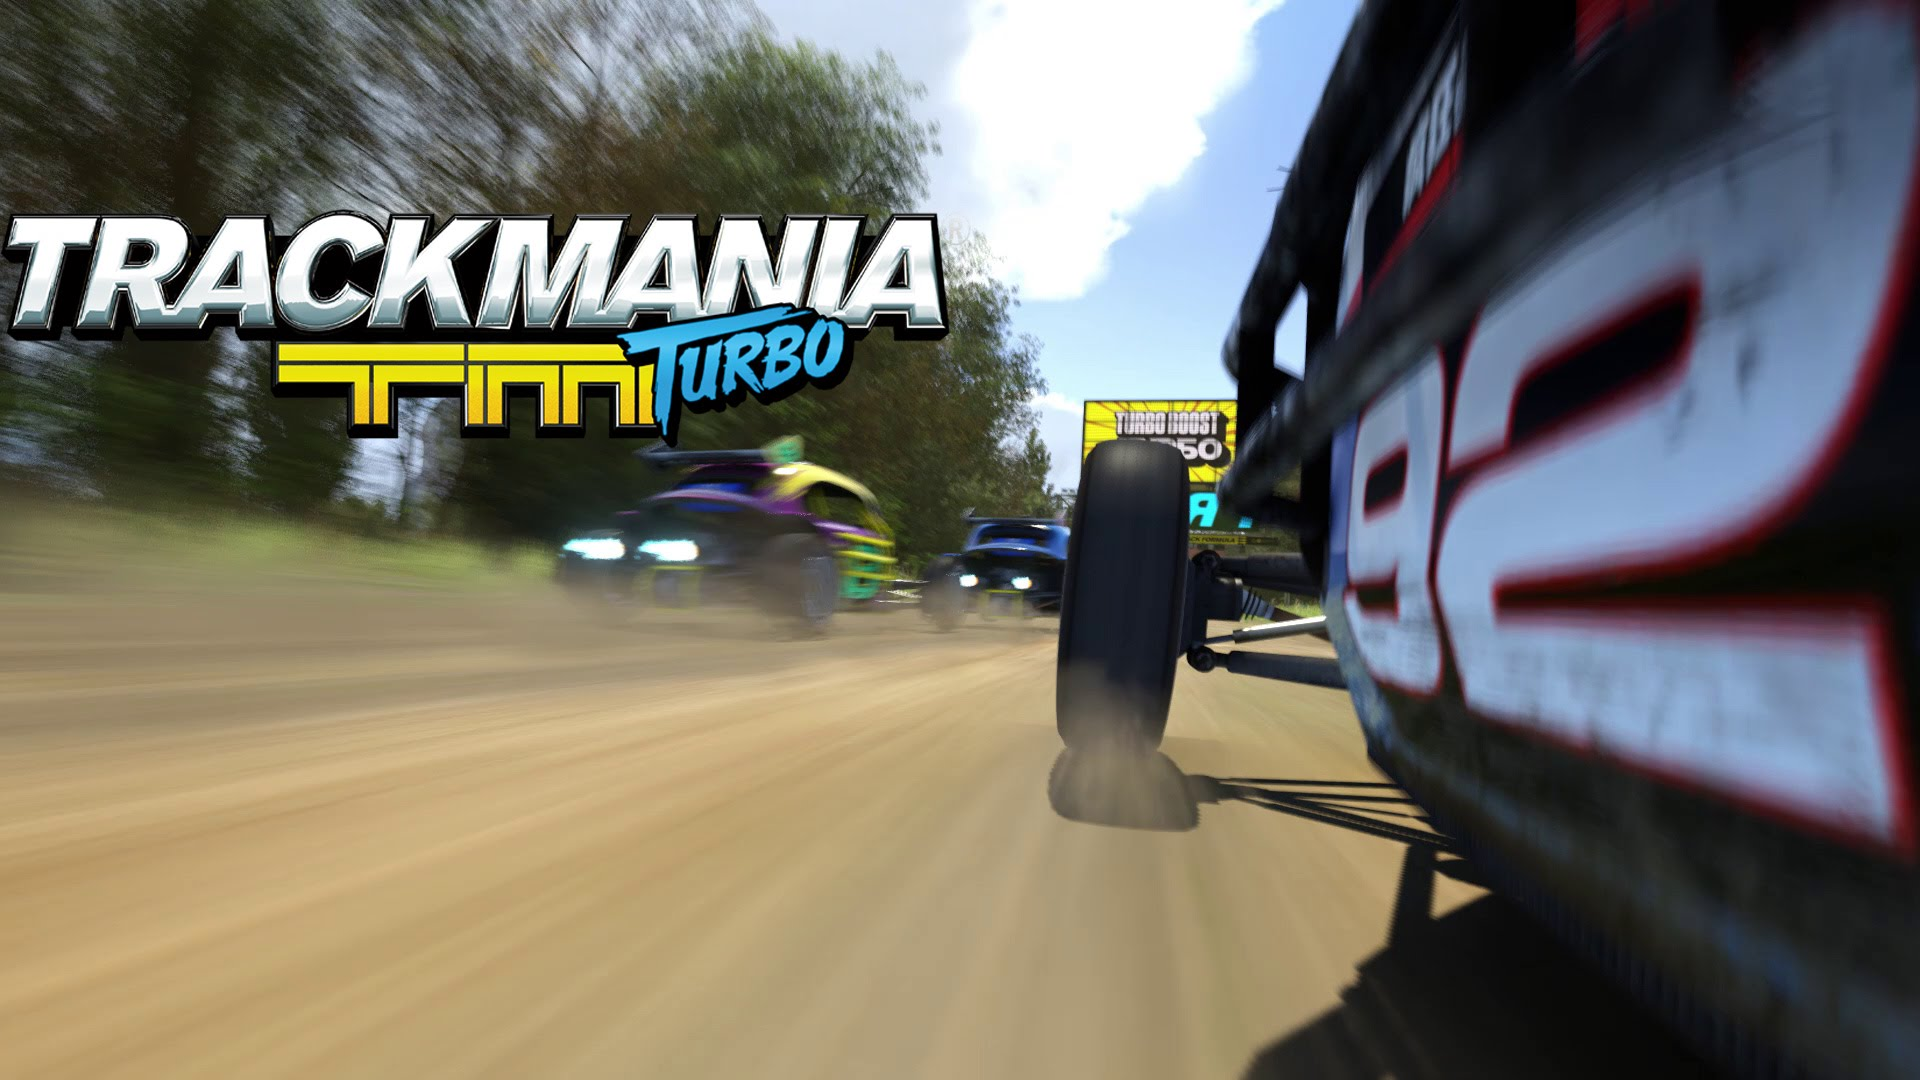 Trackmania Turbo - Trial Trailer